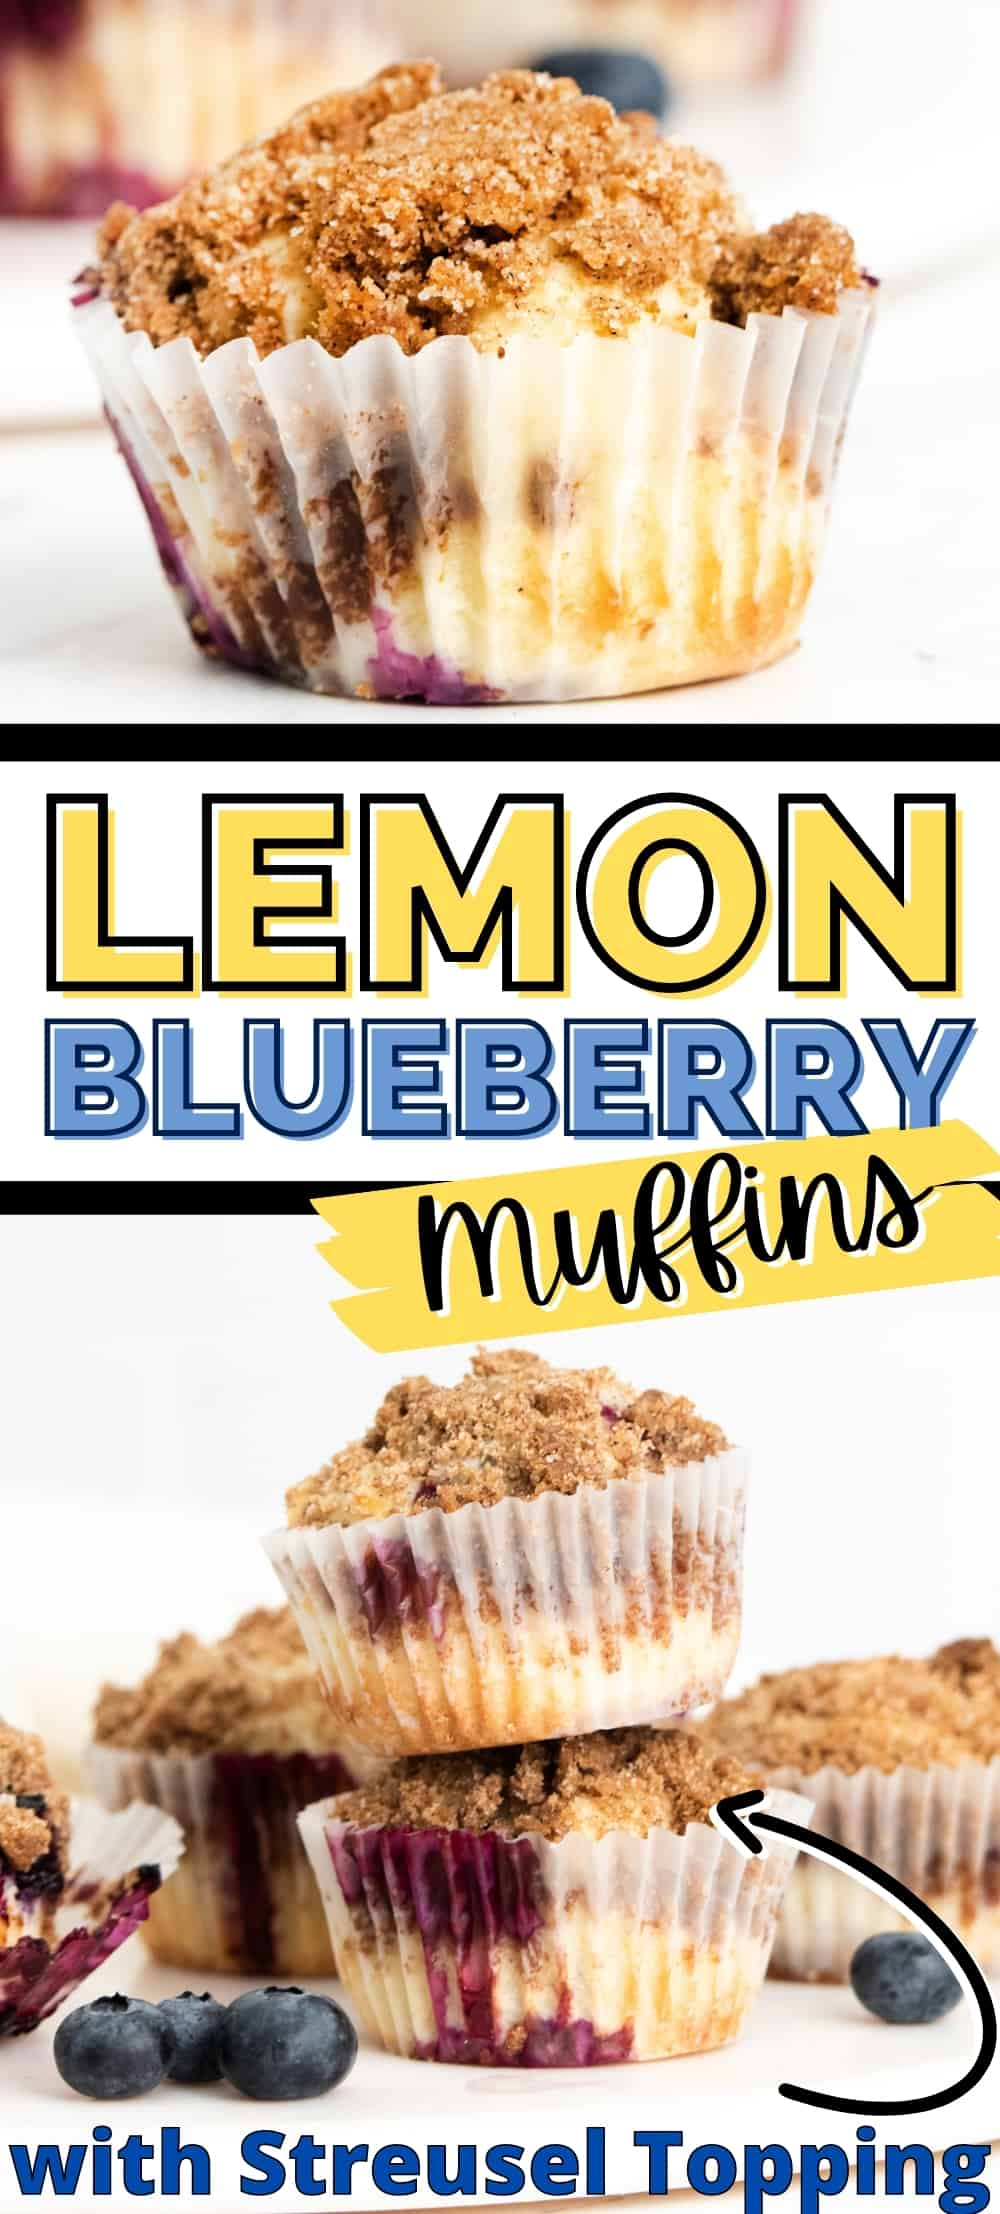 Lemon Blueberry Muffins with Streusel Topping